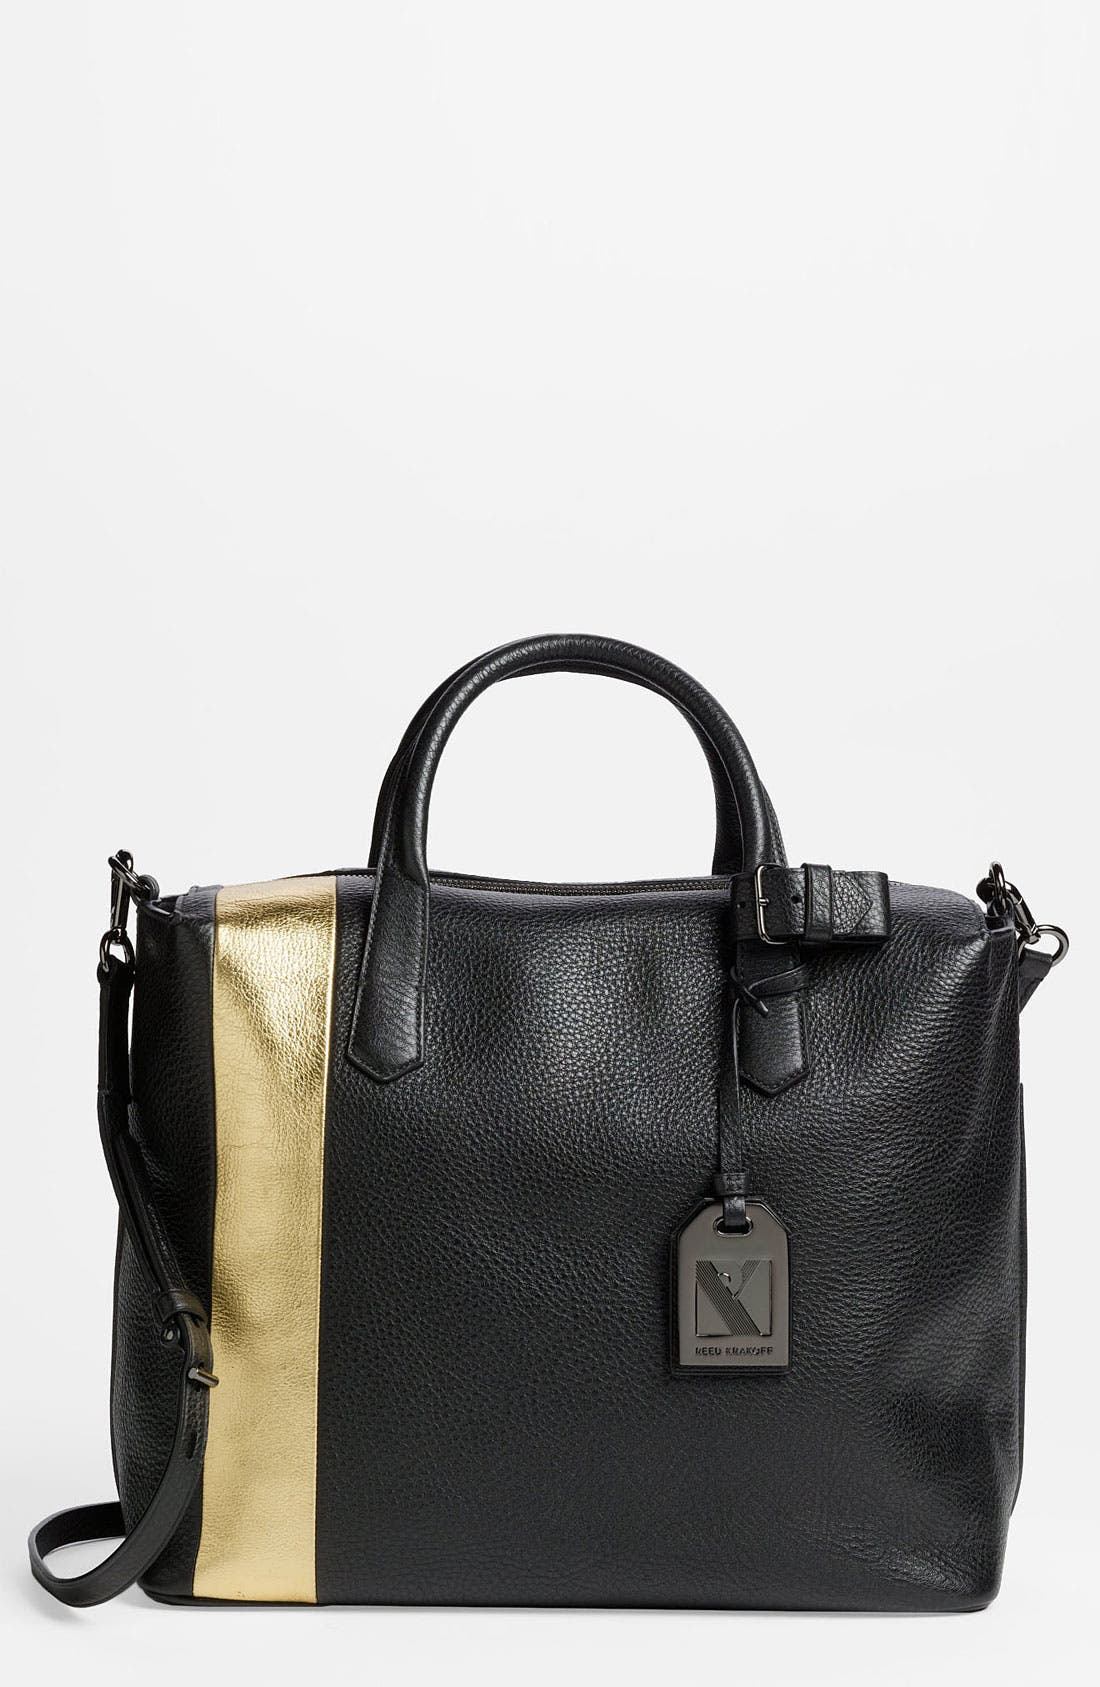 Main Image - Reed Krakoff 'Gym Bag' Leather Satchel